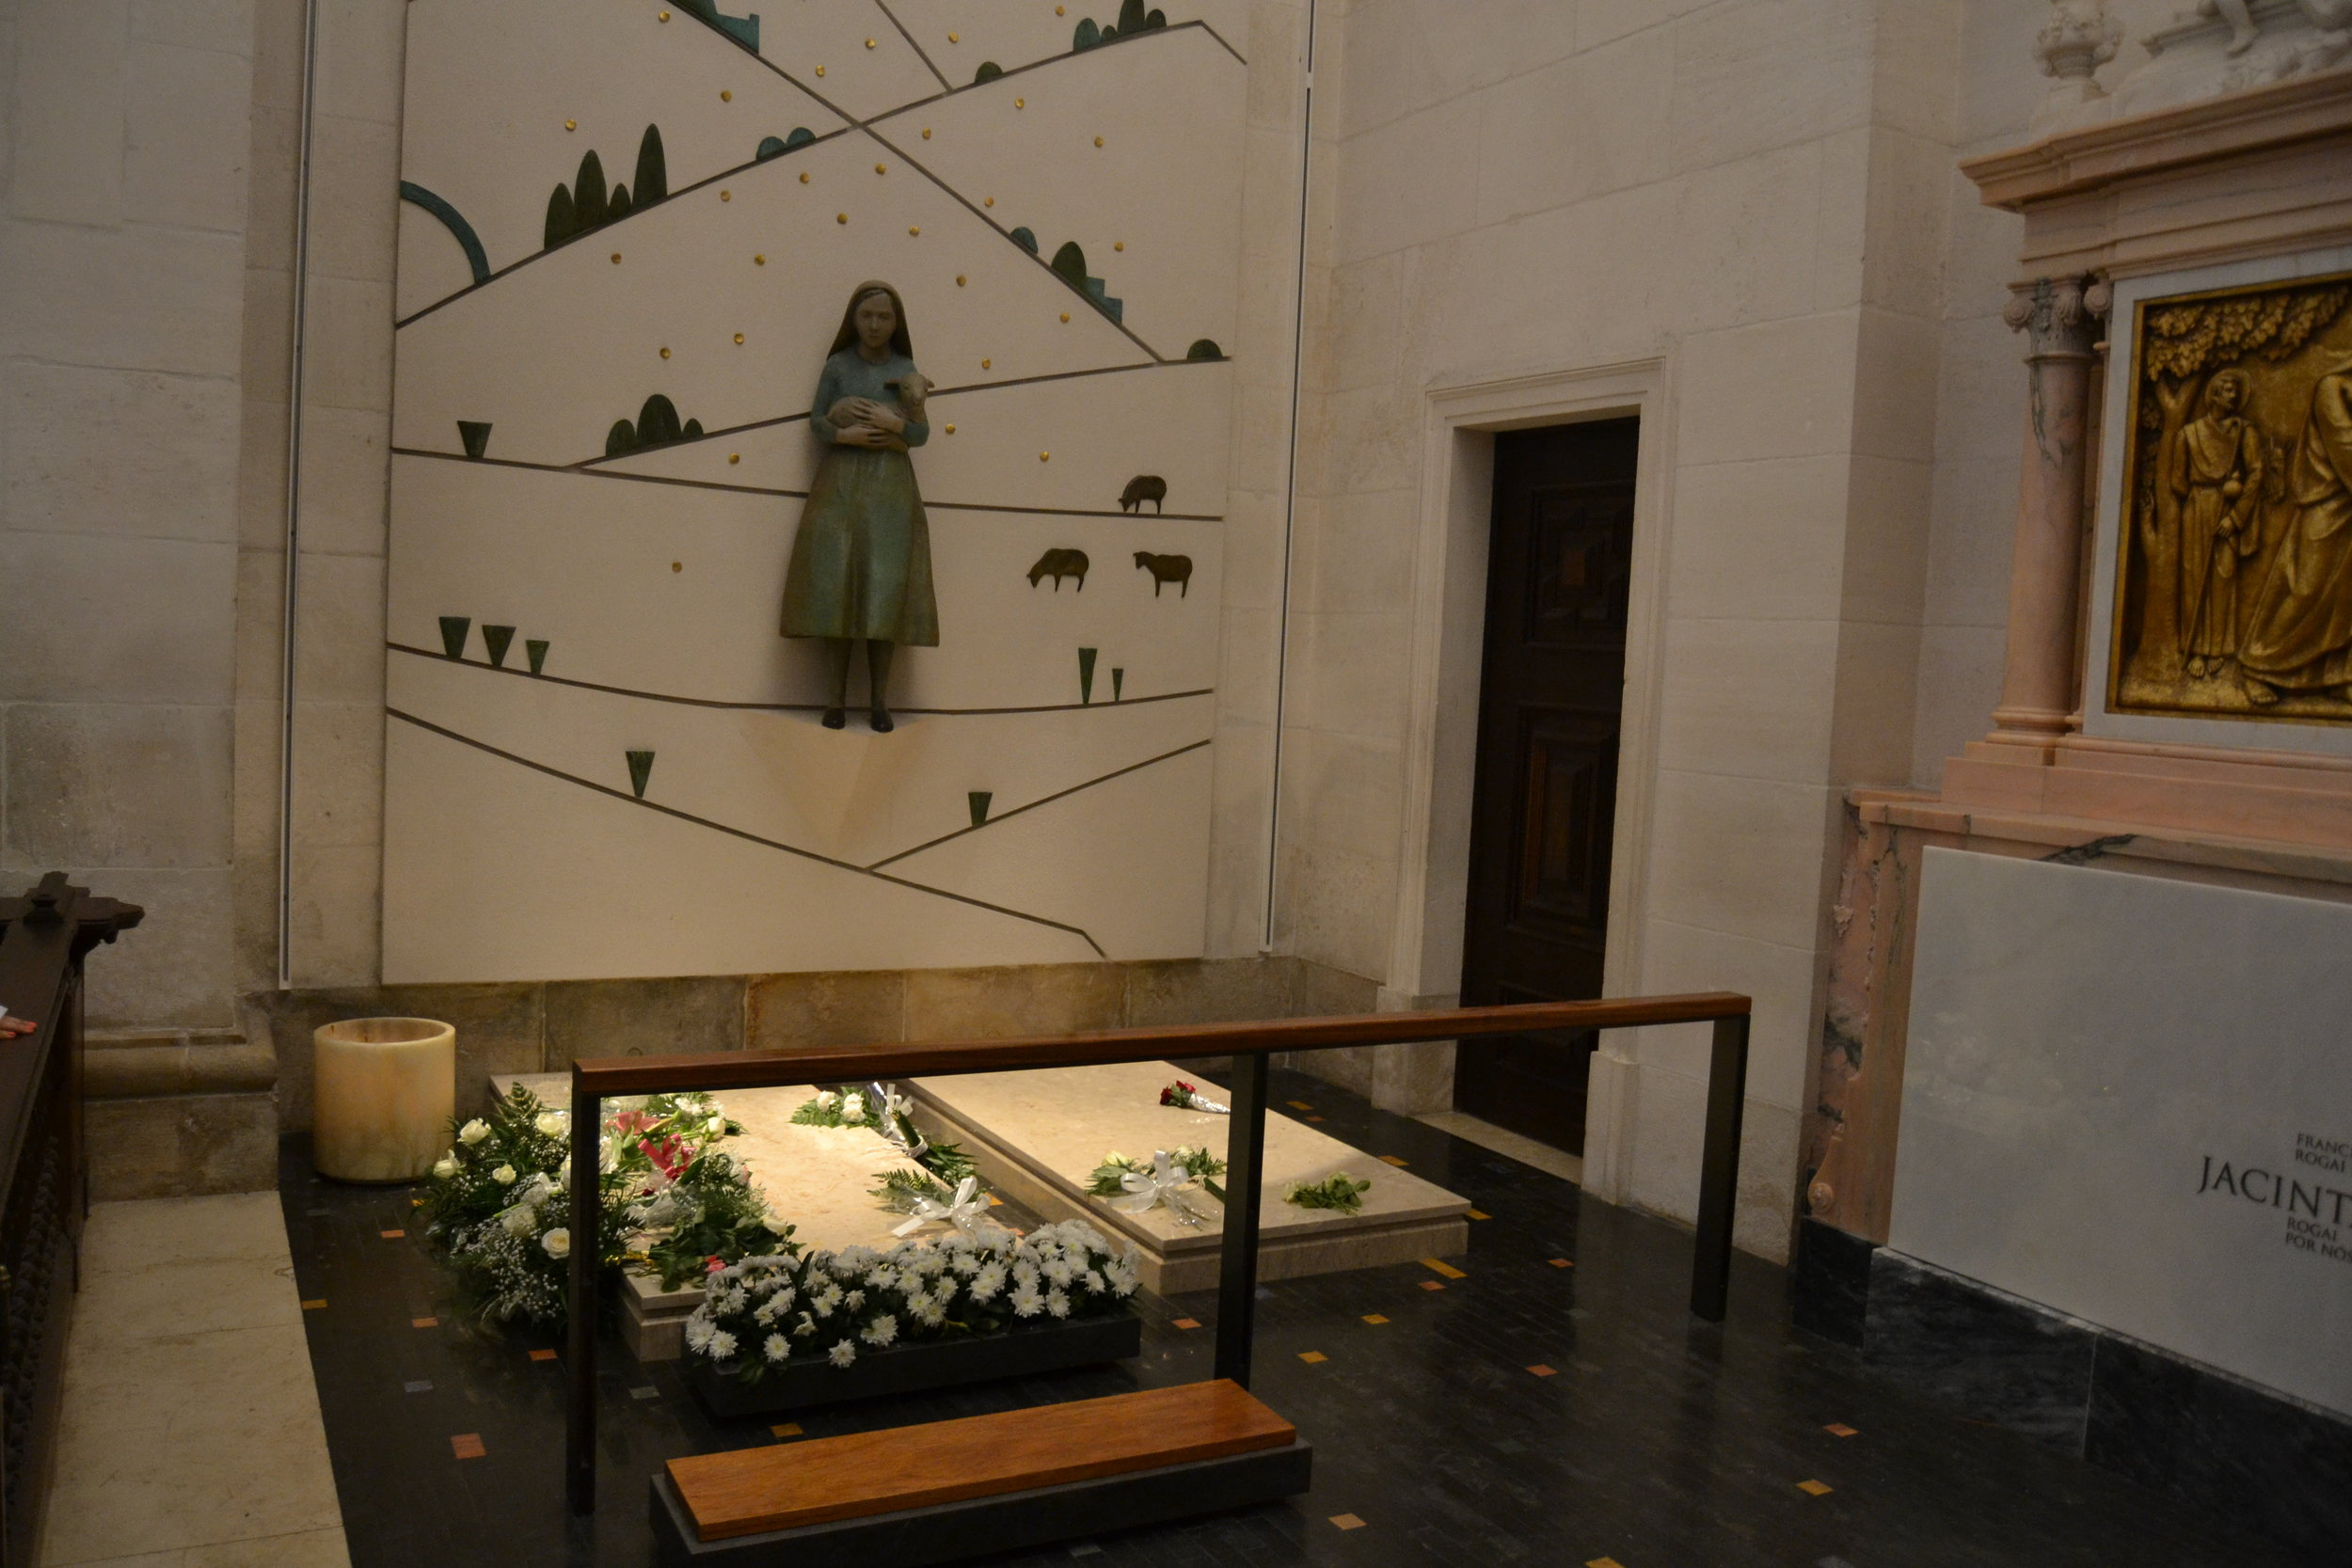 Tomb of two of the children (Lucia and Jacinta) who saw the apparition of the Virgin Mary in 1917